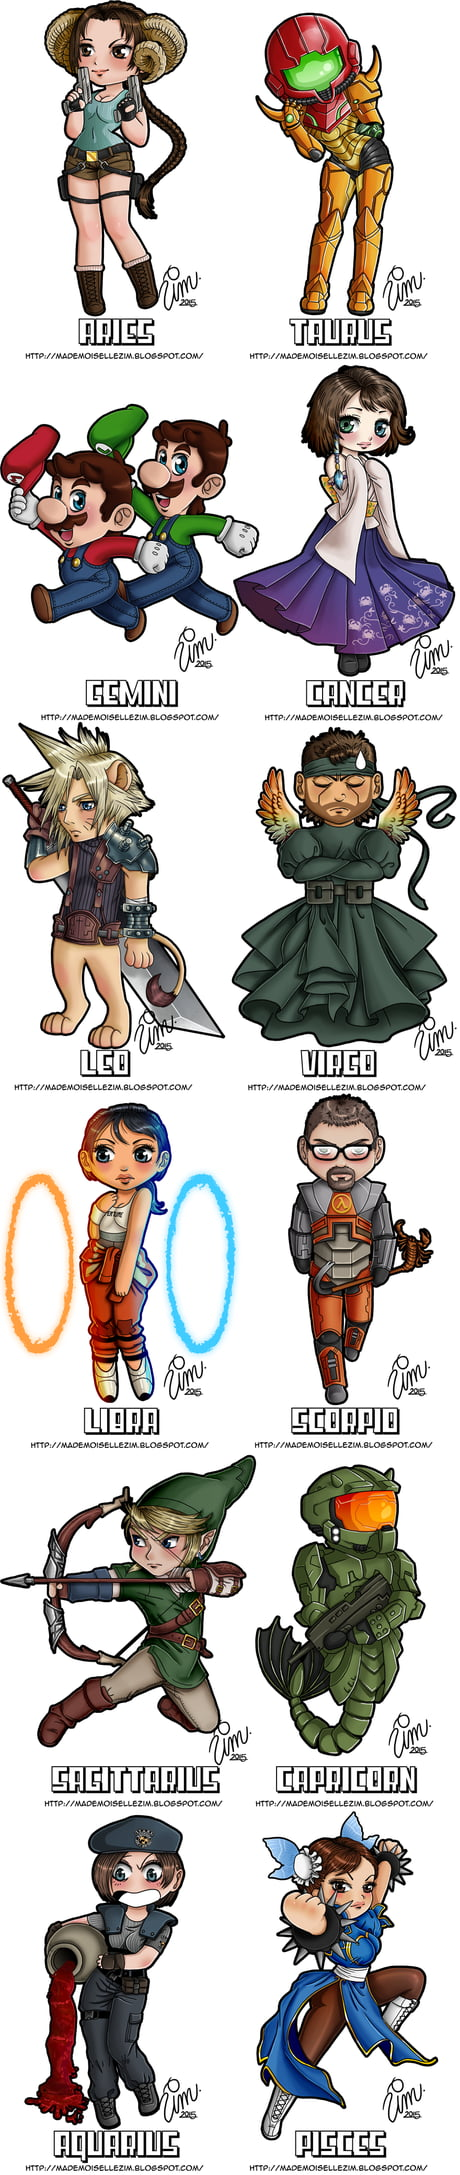 What Is Your Zodiac Sign? - Gamer Edition (By Mademoiselle